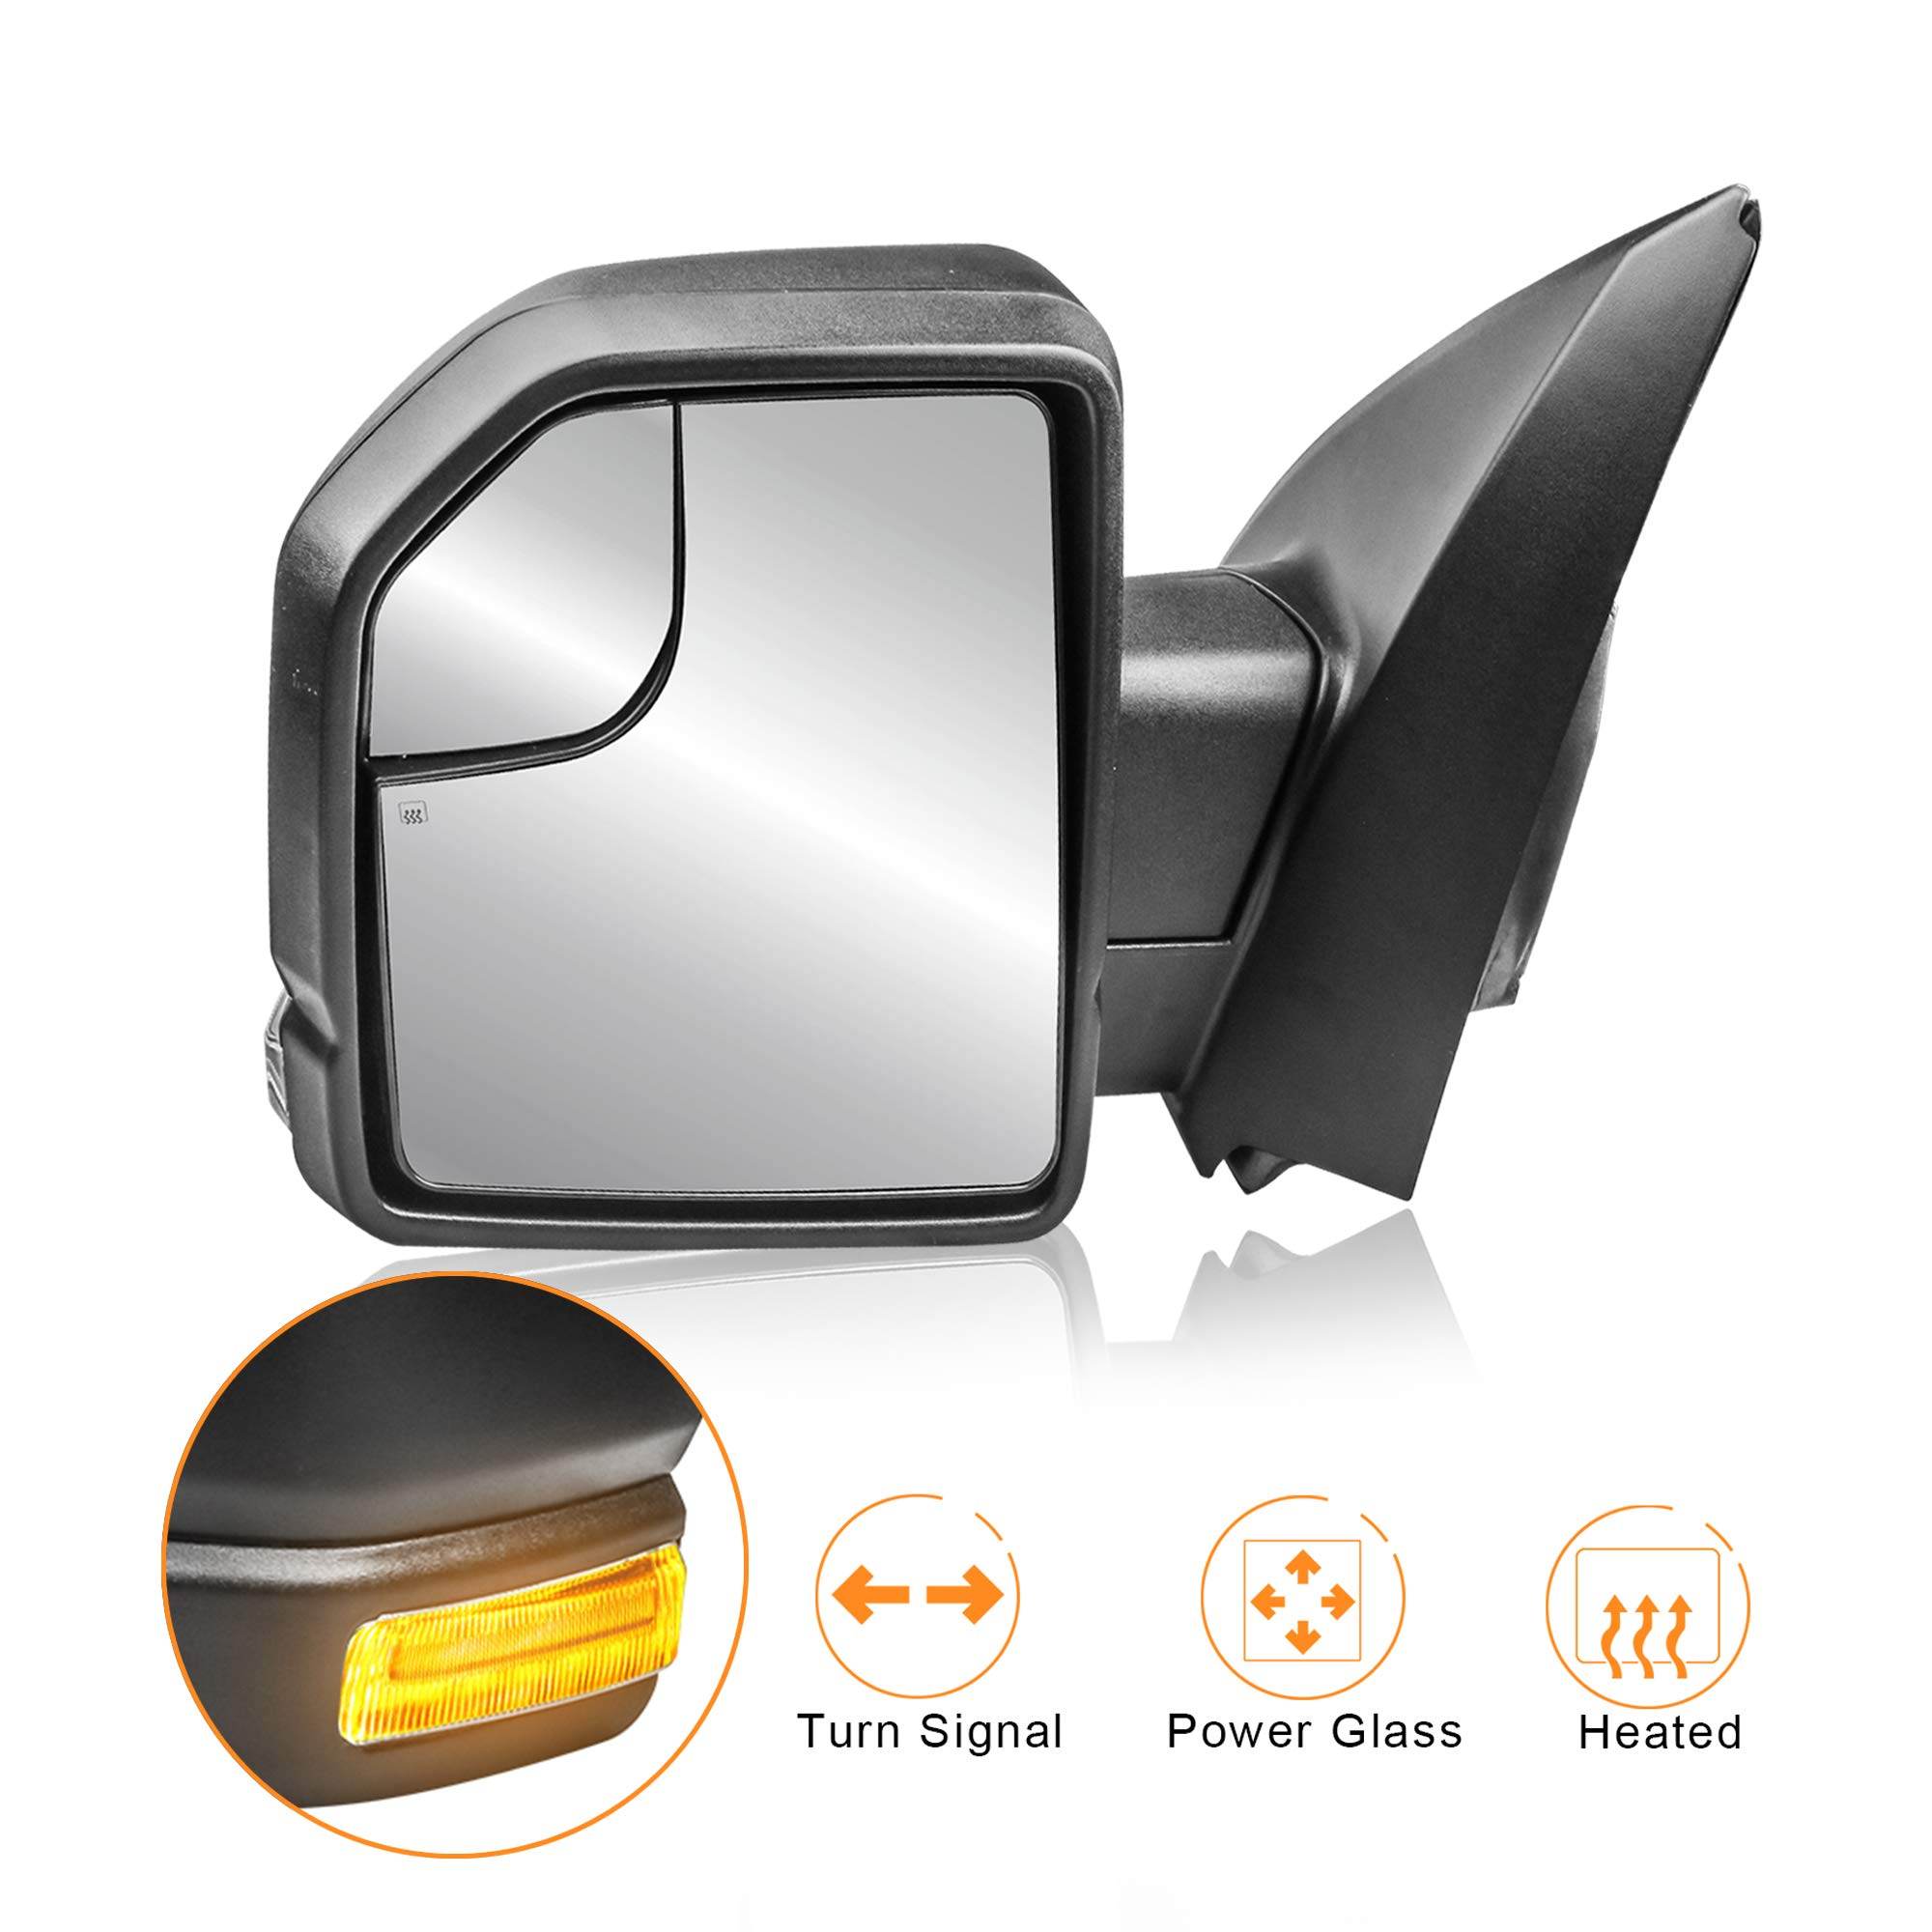 MOSTPLUS Left LH Driver side Power Heated Towing Mirrors for Ford F150 2015 2016 2017 w/Turn Signal 8-Pin Plug (Left Side Mirror) by MOSTPLUS